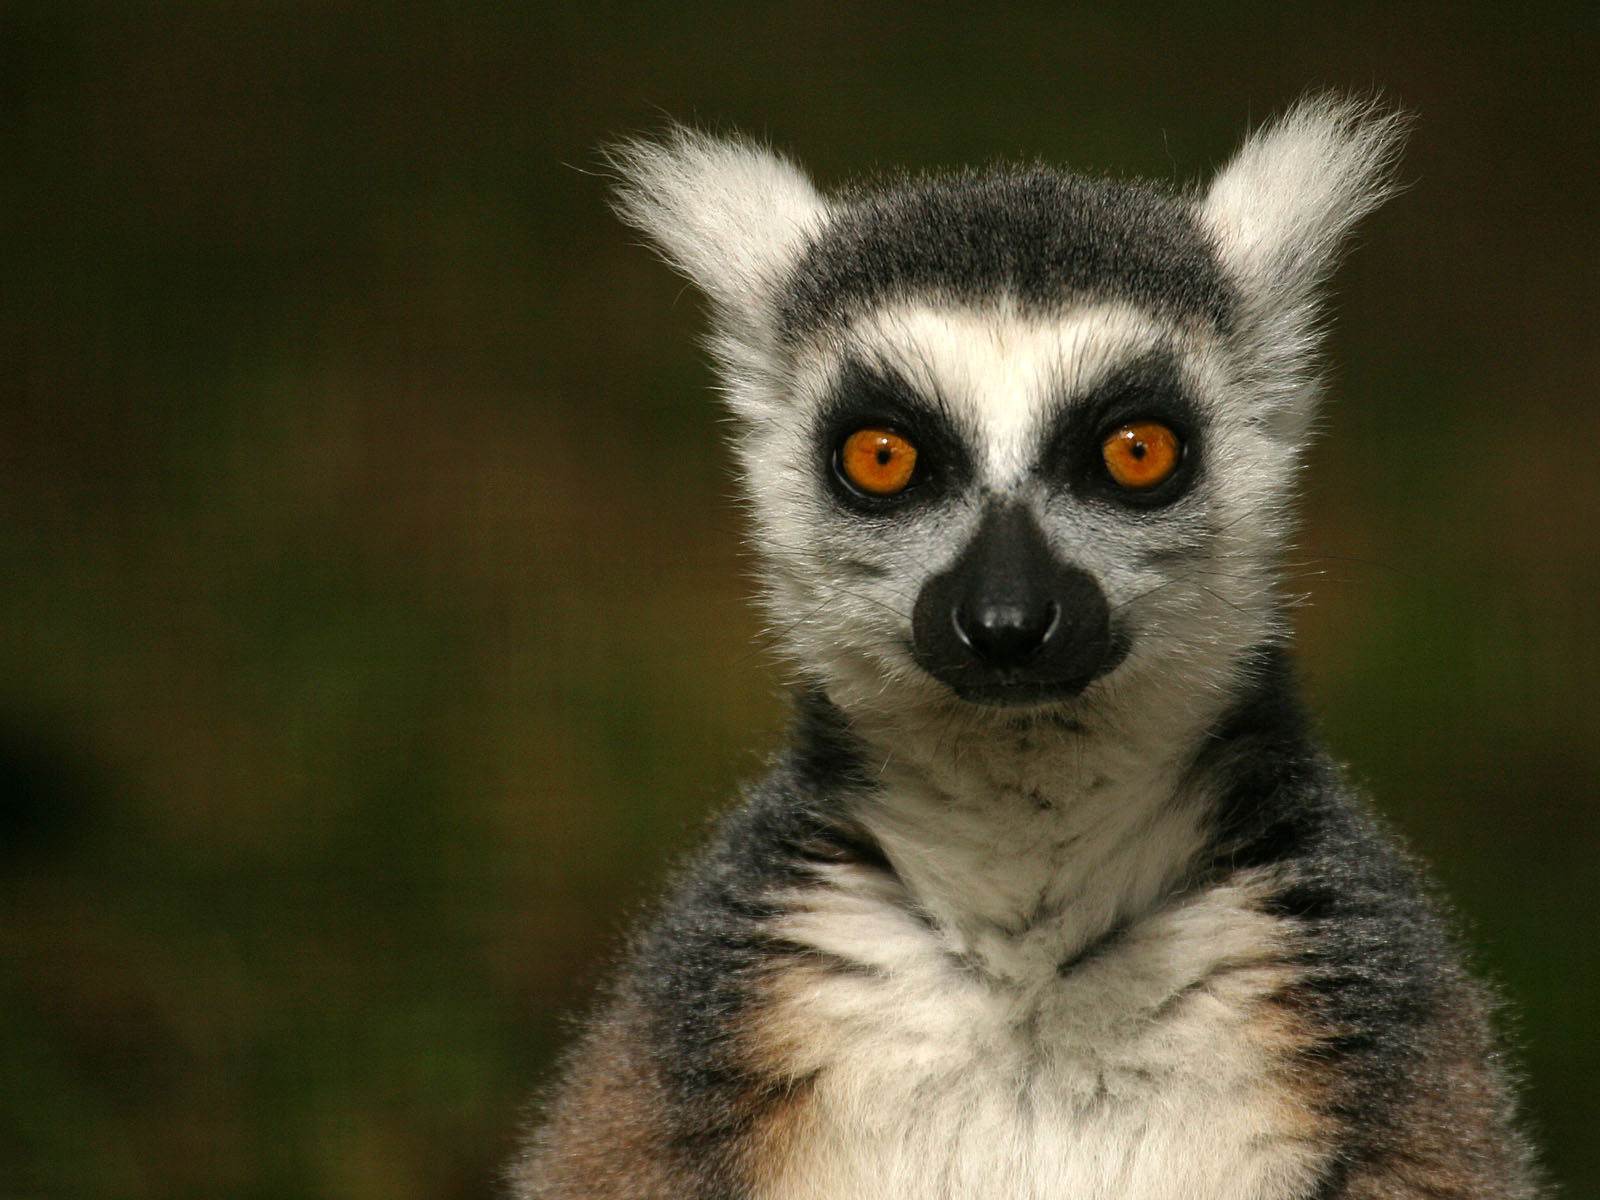 HD Lemur Wallpapers and Photos, 1600x1200 px | By Franklyn Seats